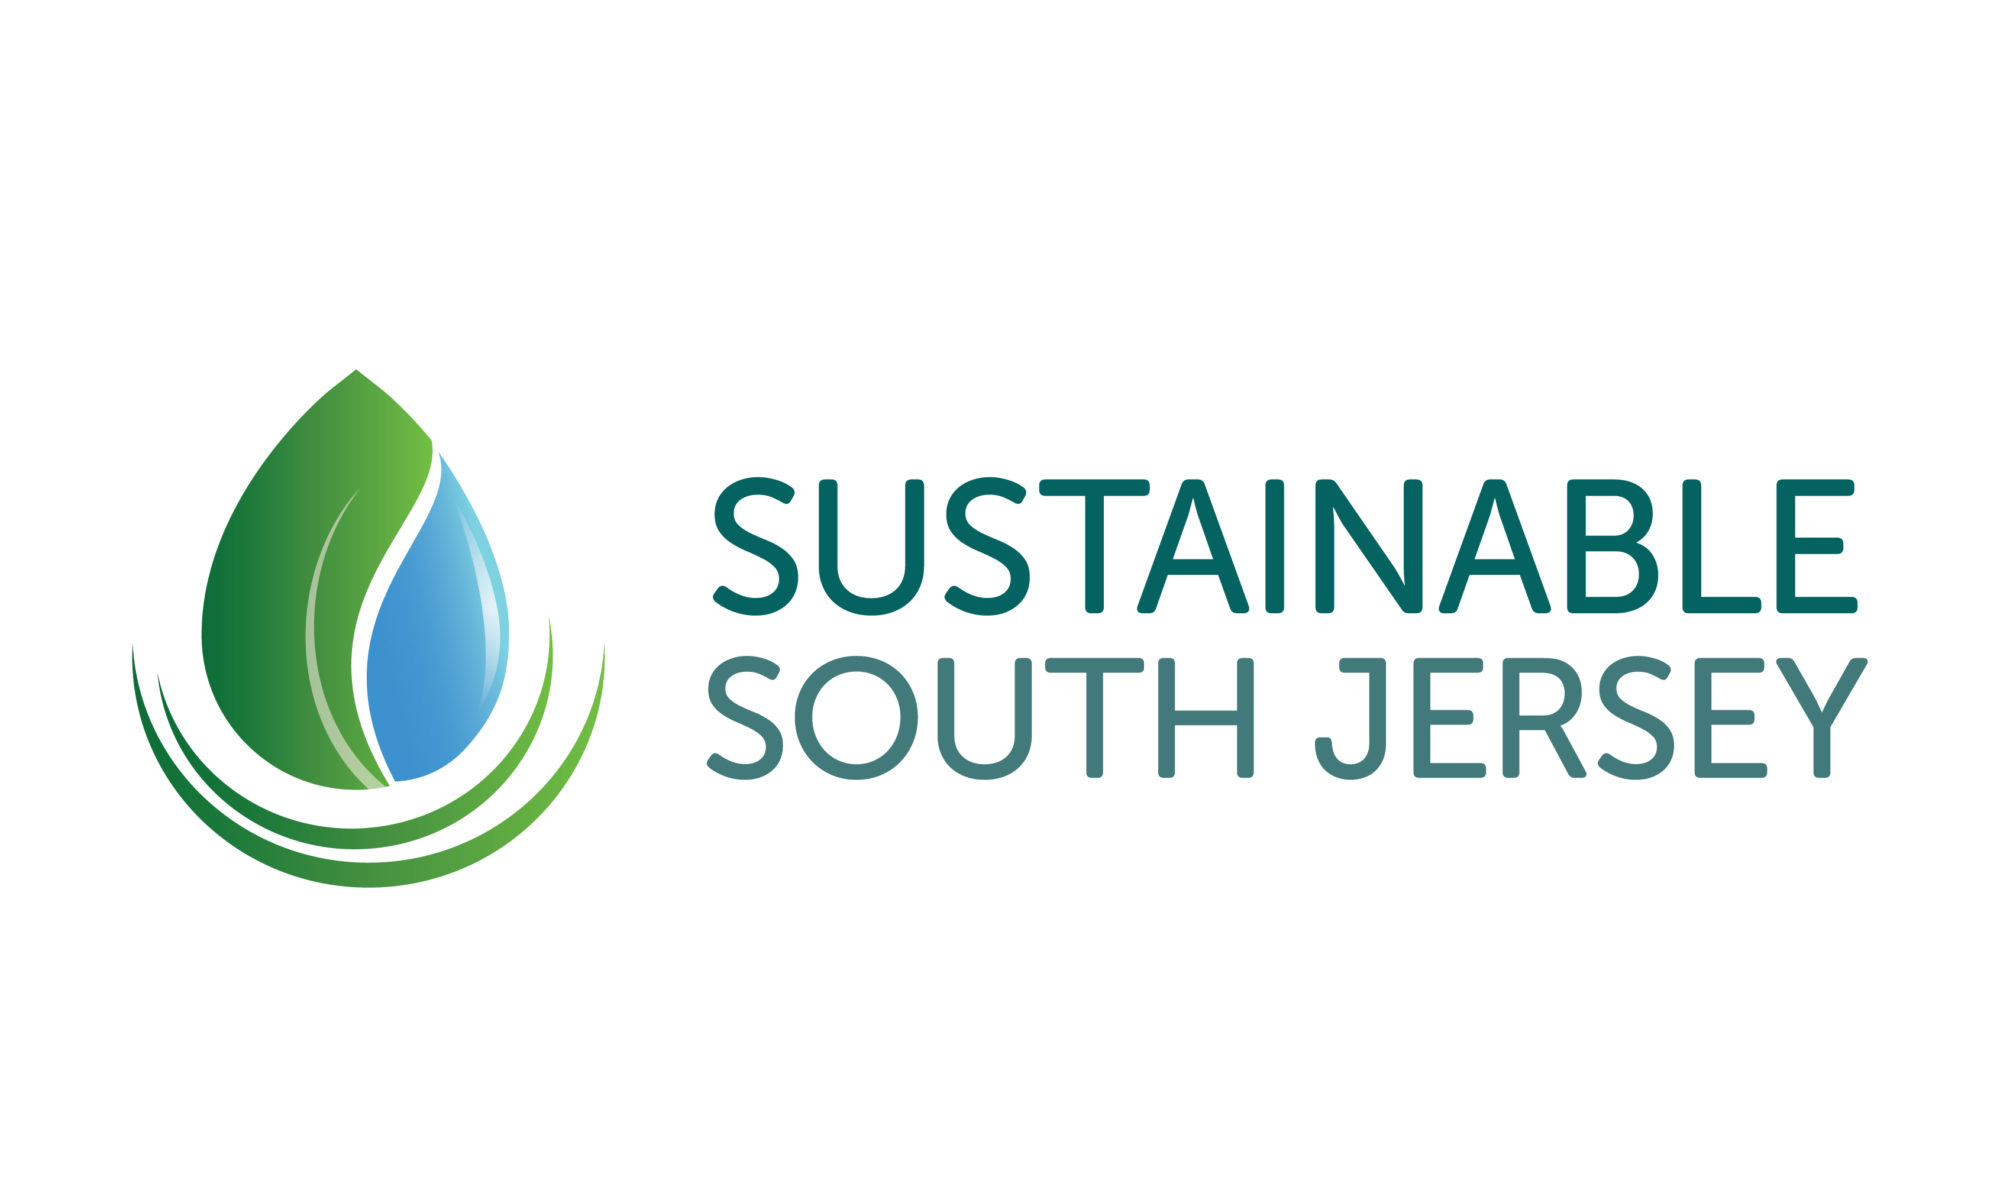 Sustainable South Jersey